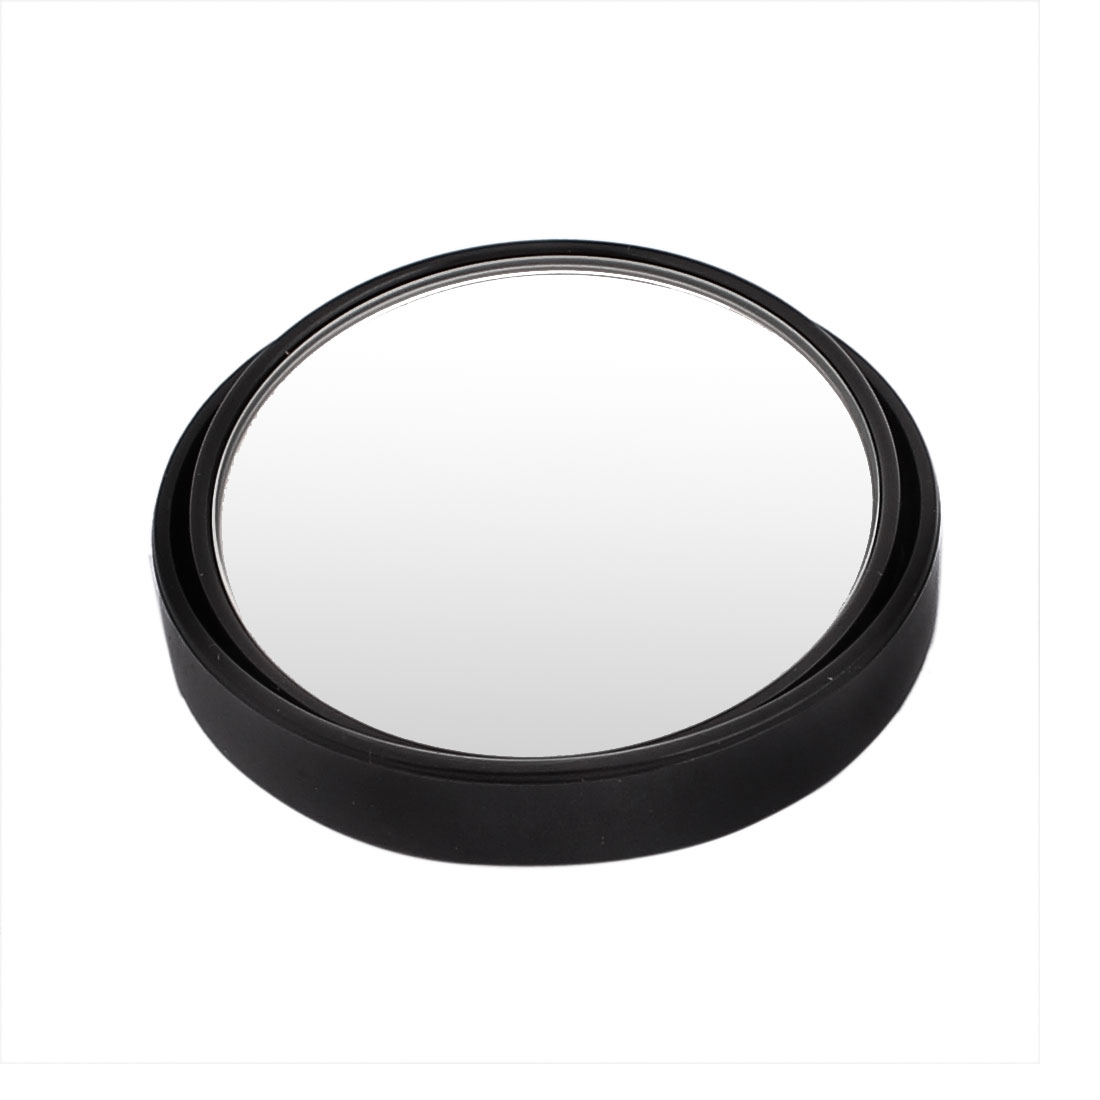 Plastic Shell Round Convex Self Adhesive Blind Spot Rear View Mirror Black